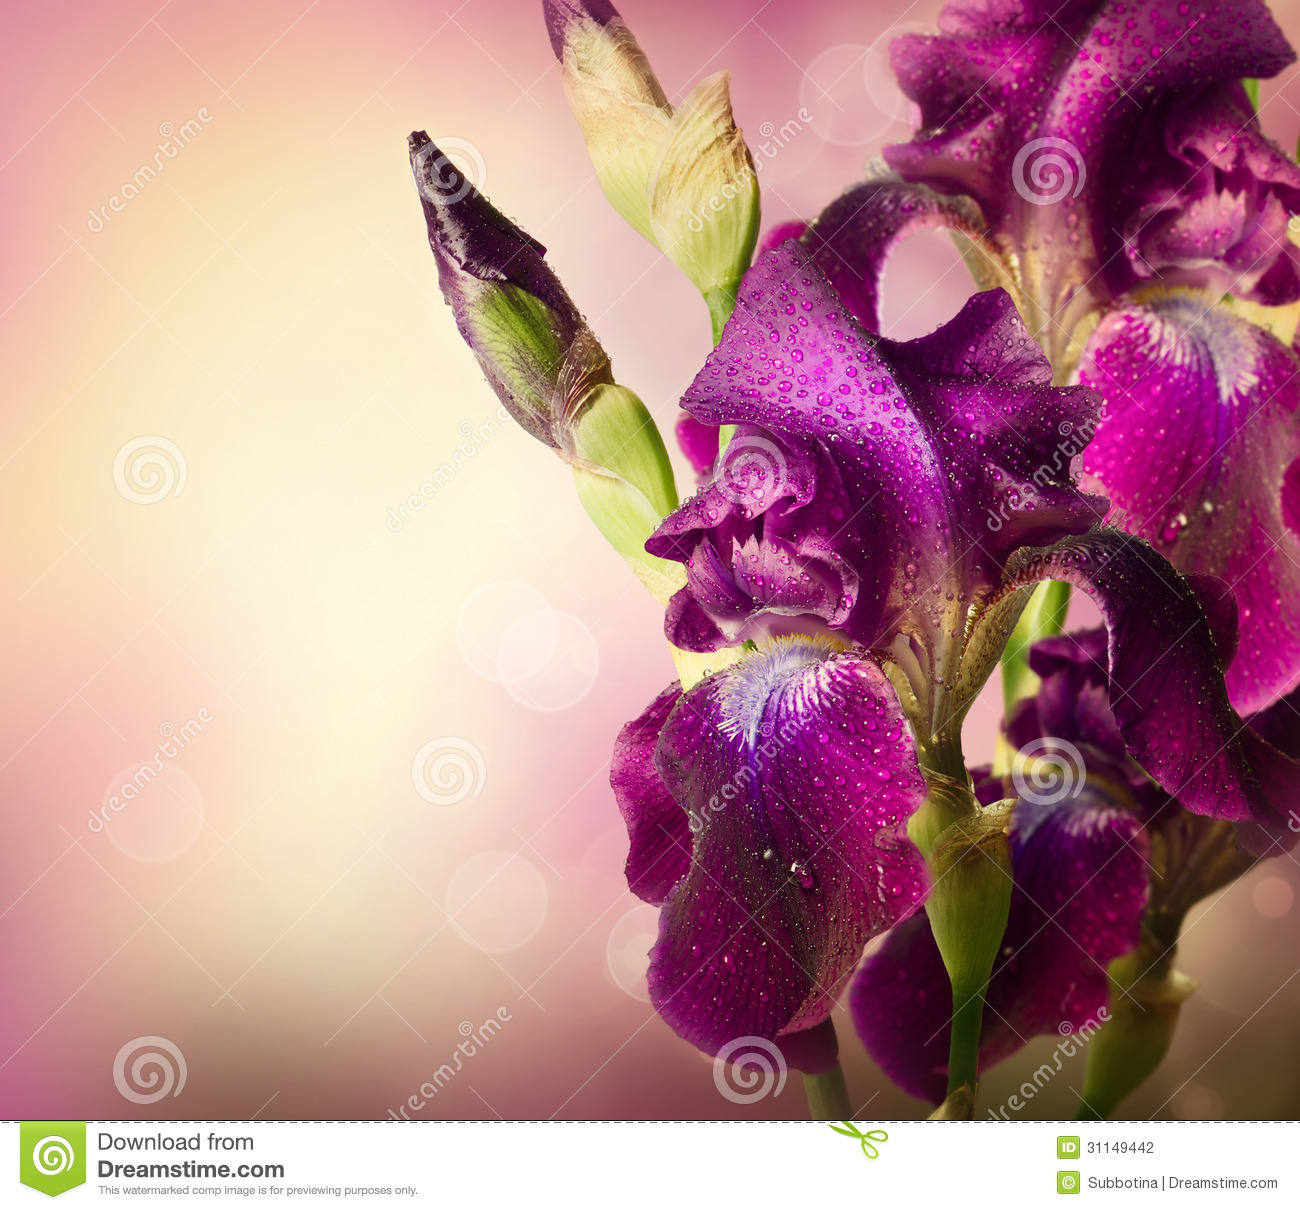 Iris Flowers Art Design Stock Photo Image Of Florist 31149442